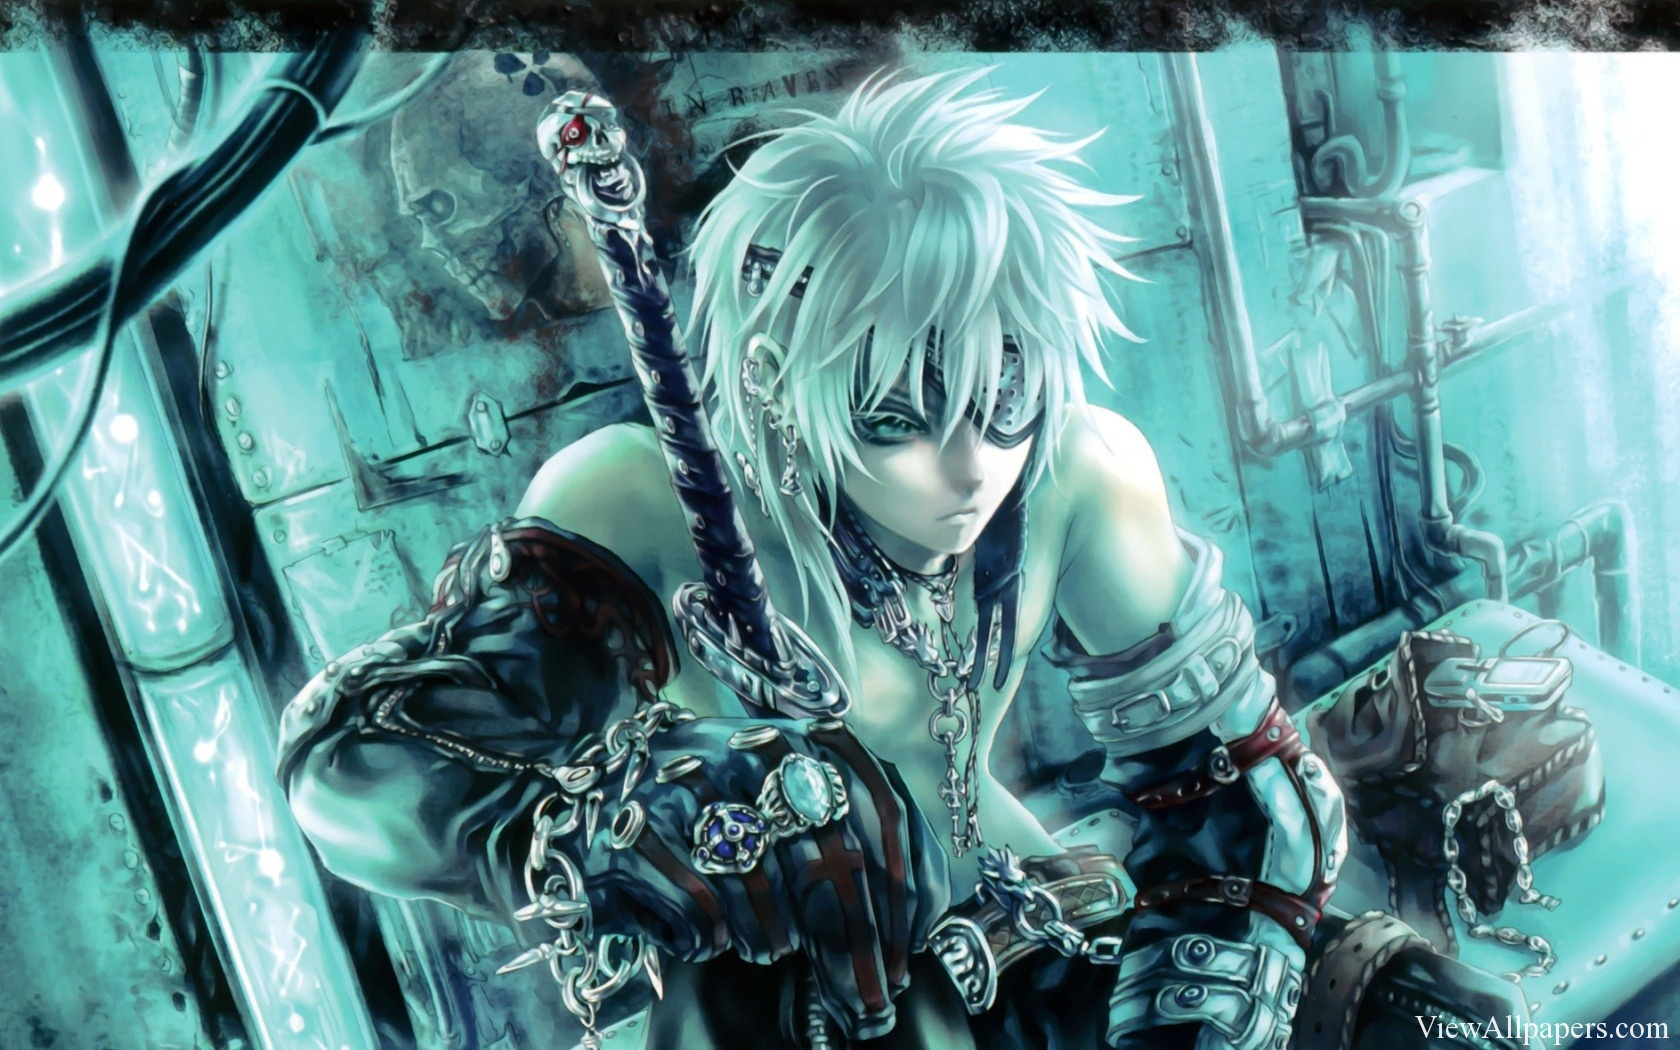 Anime Fighter Warrior Wallpaper High Resolution, Free download